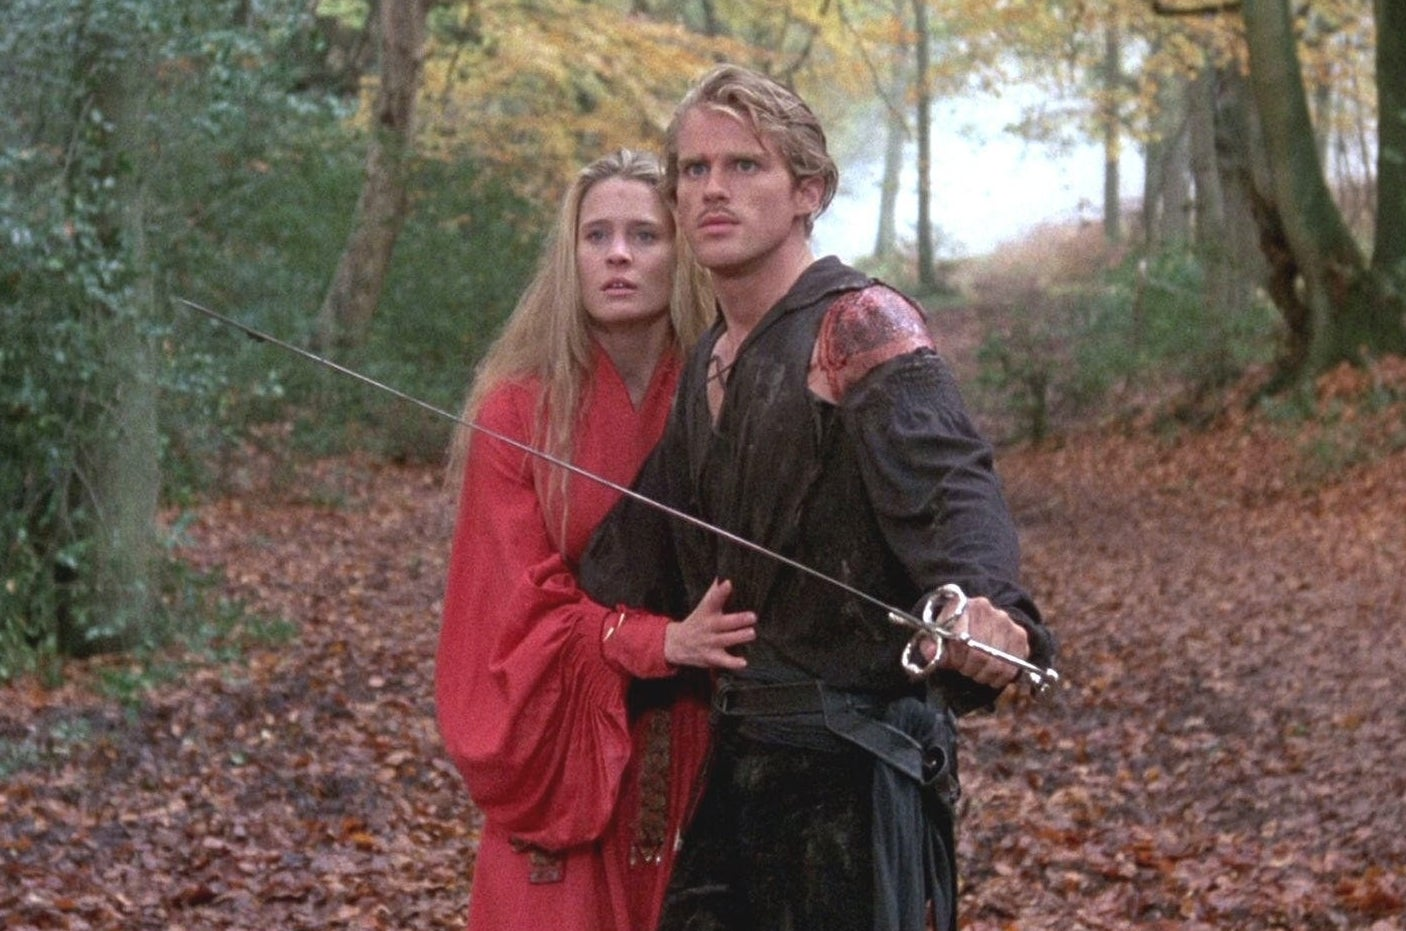 Westley and Buttercup in the forest; Westley has his sword drawn, while protecting Buttercup